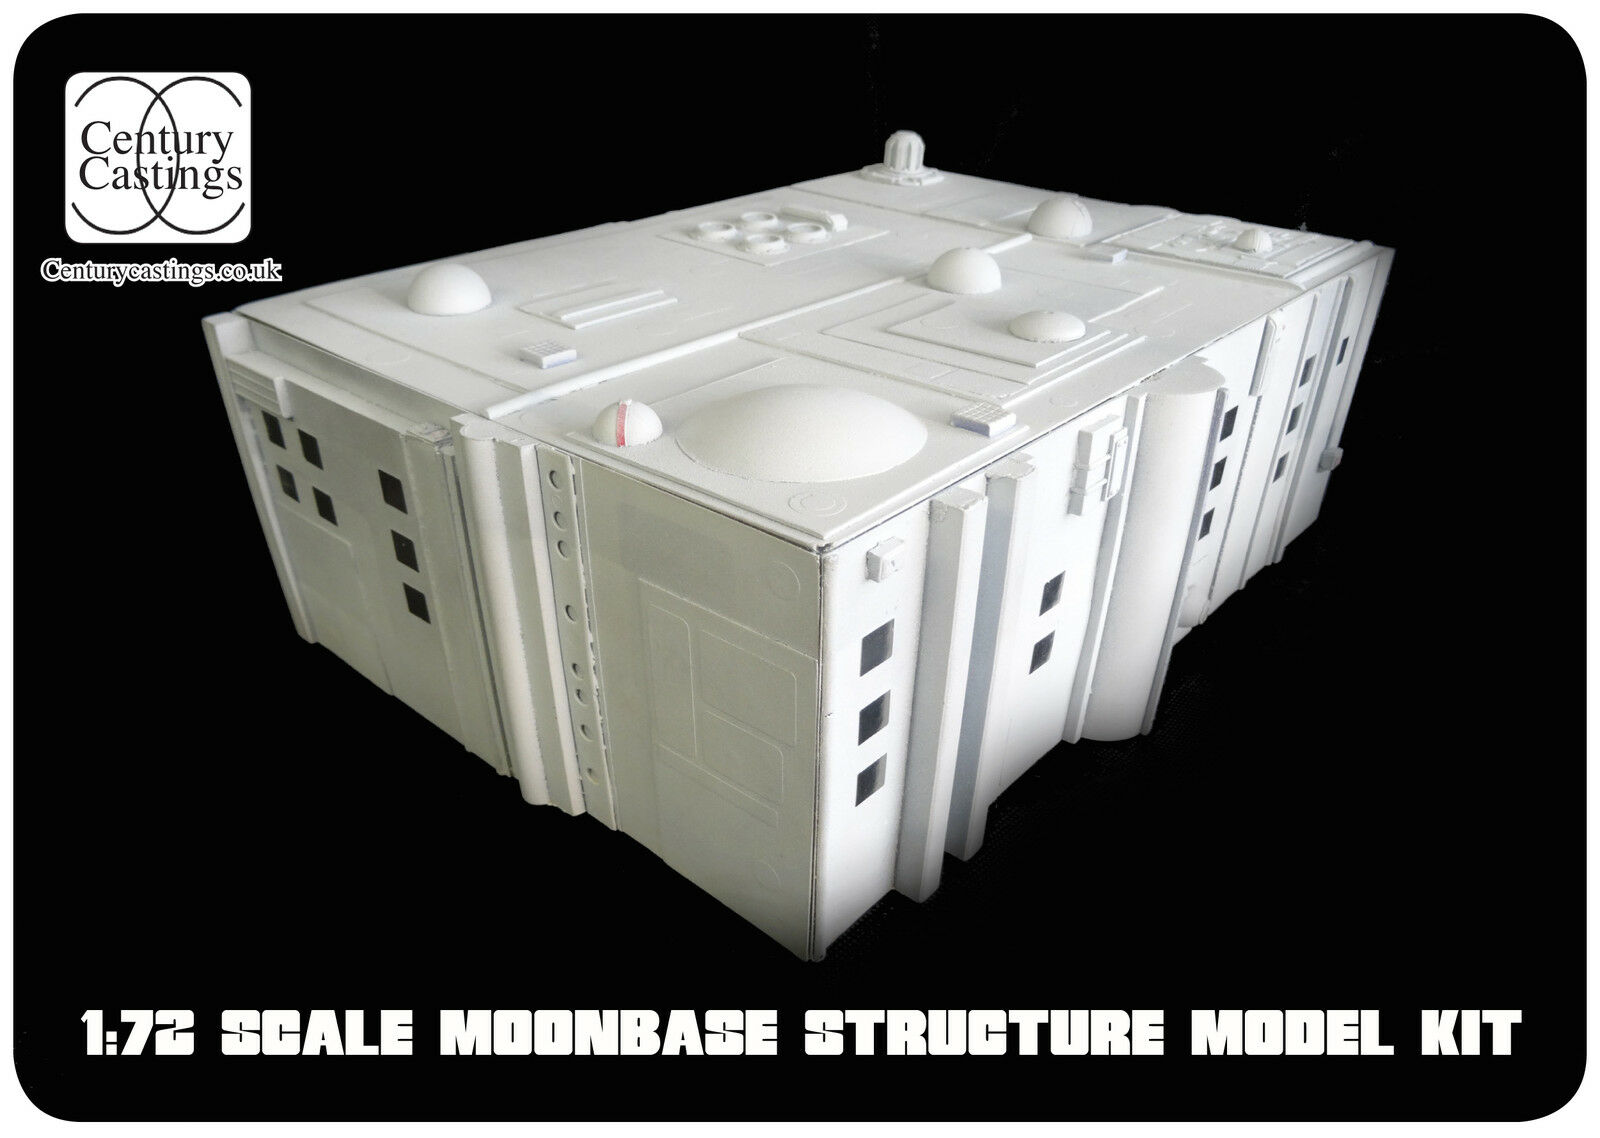 Space 1999 moonbase alpha building model kit 1 72 scale by century castings